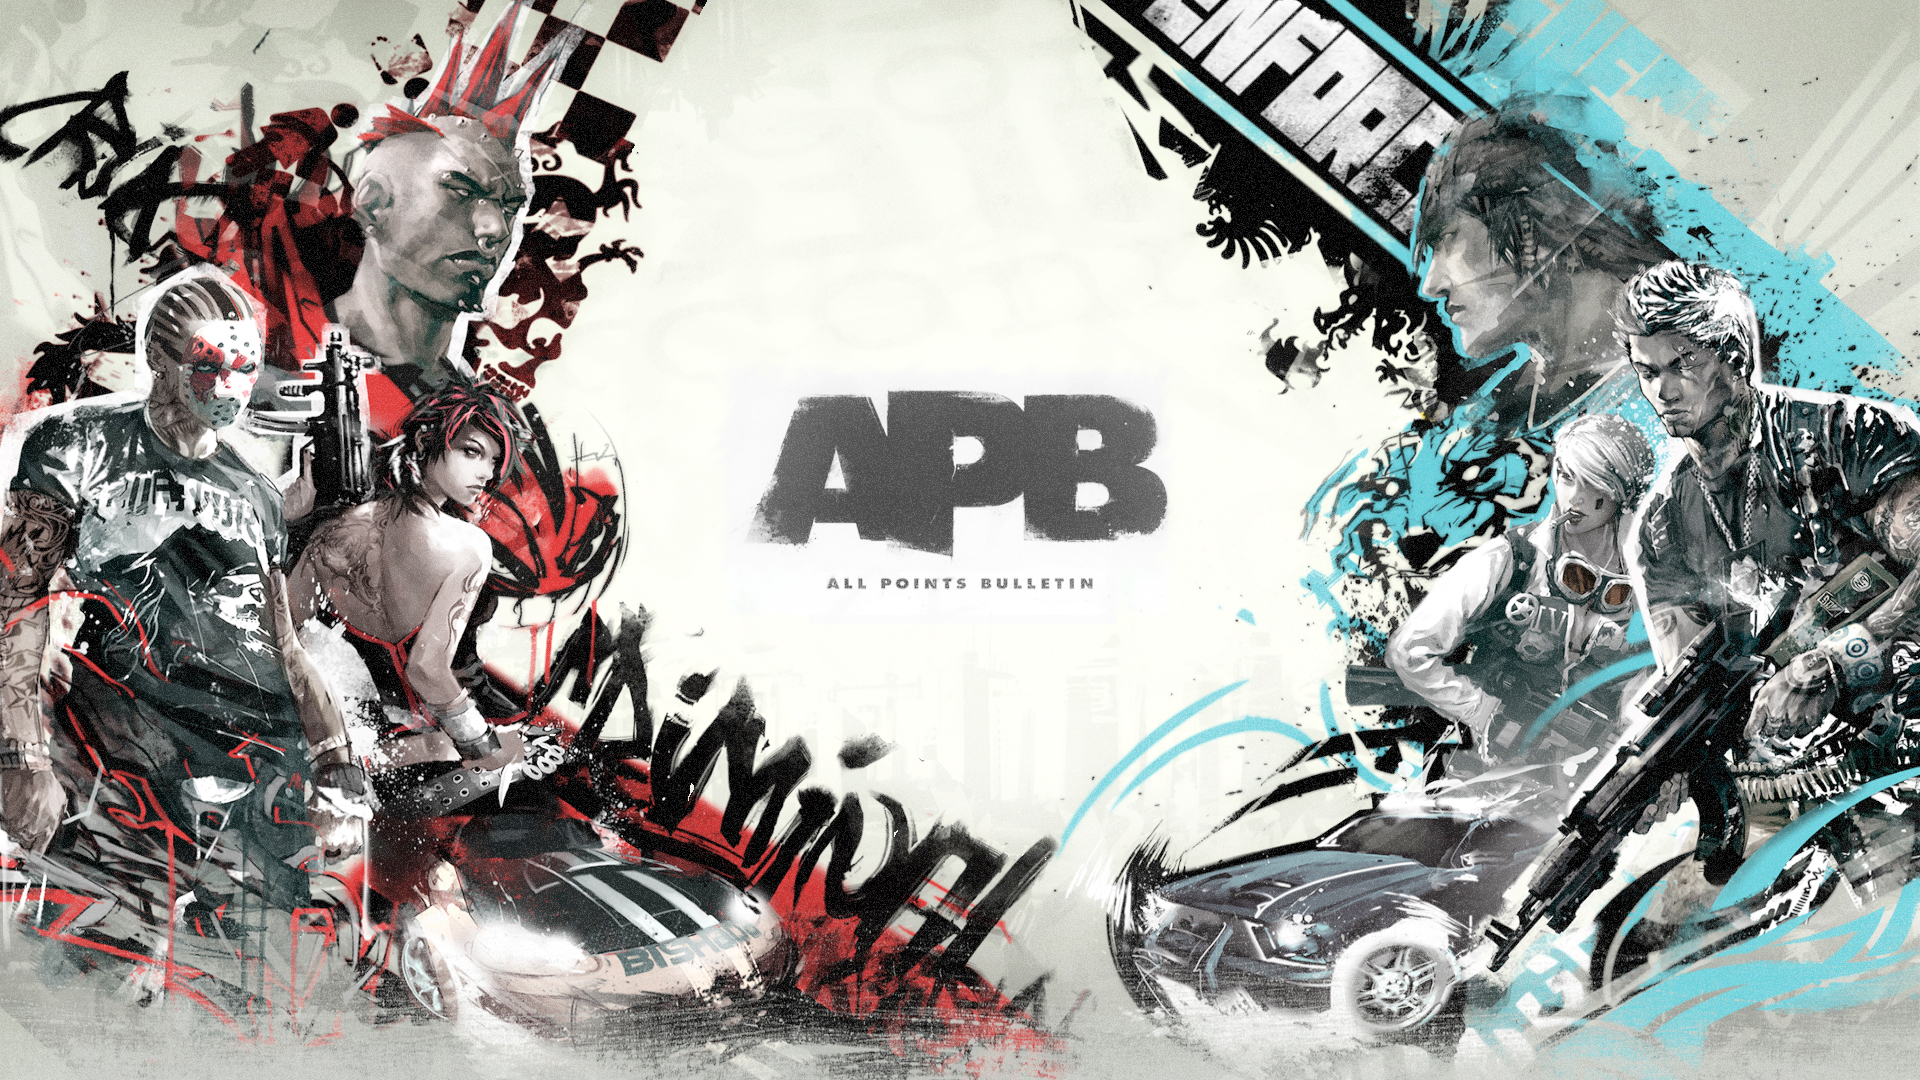 apb_1920x1080_combination_by_jackknife35.jpg